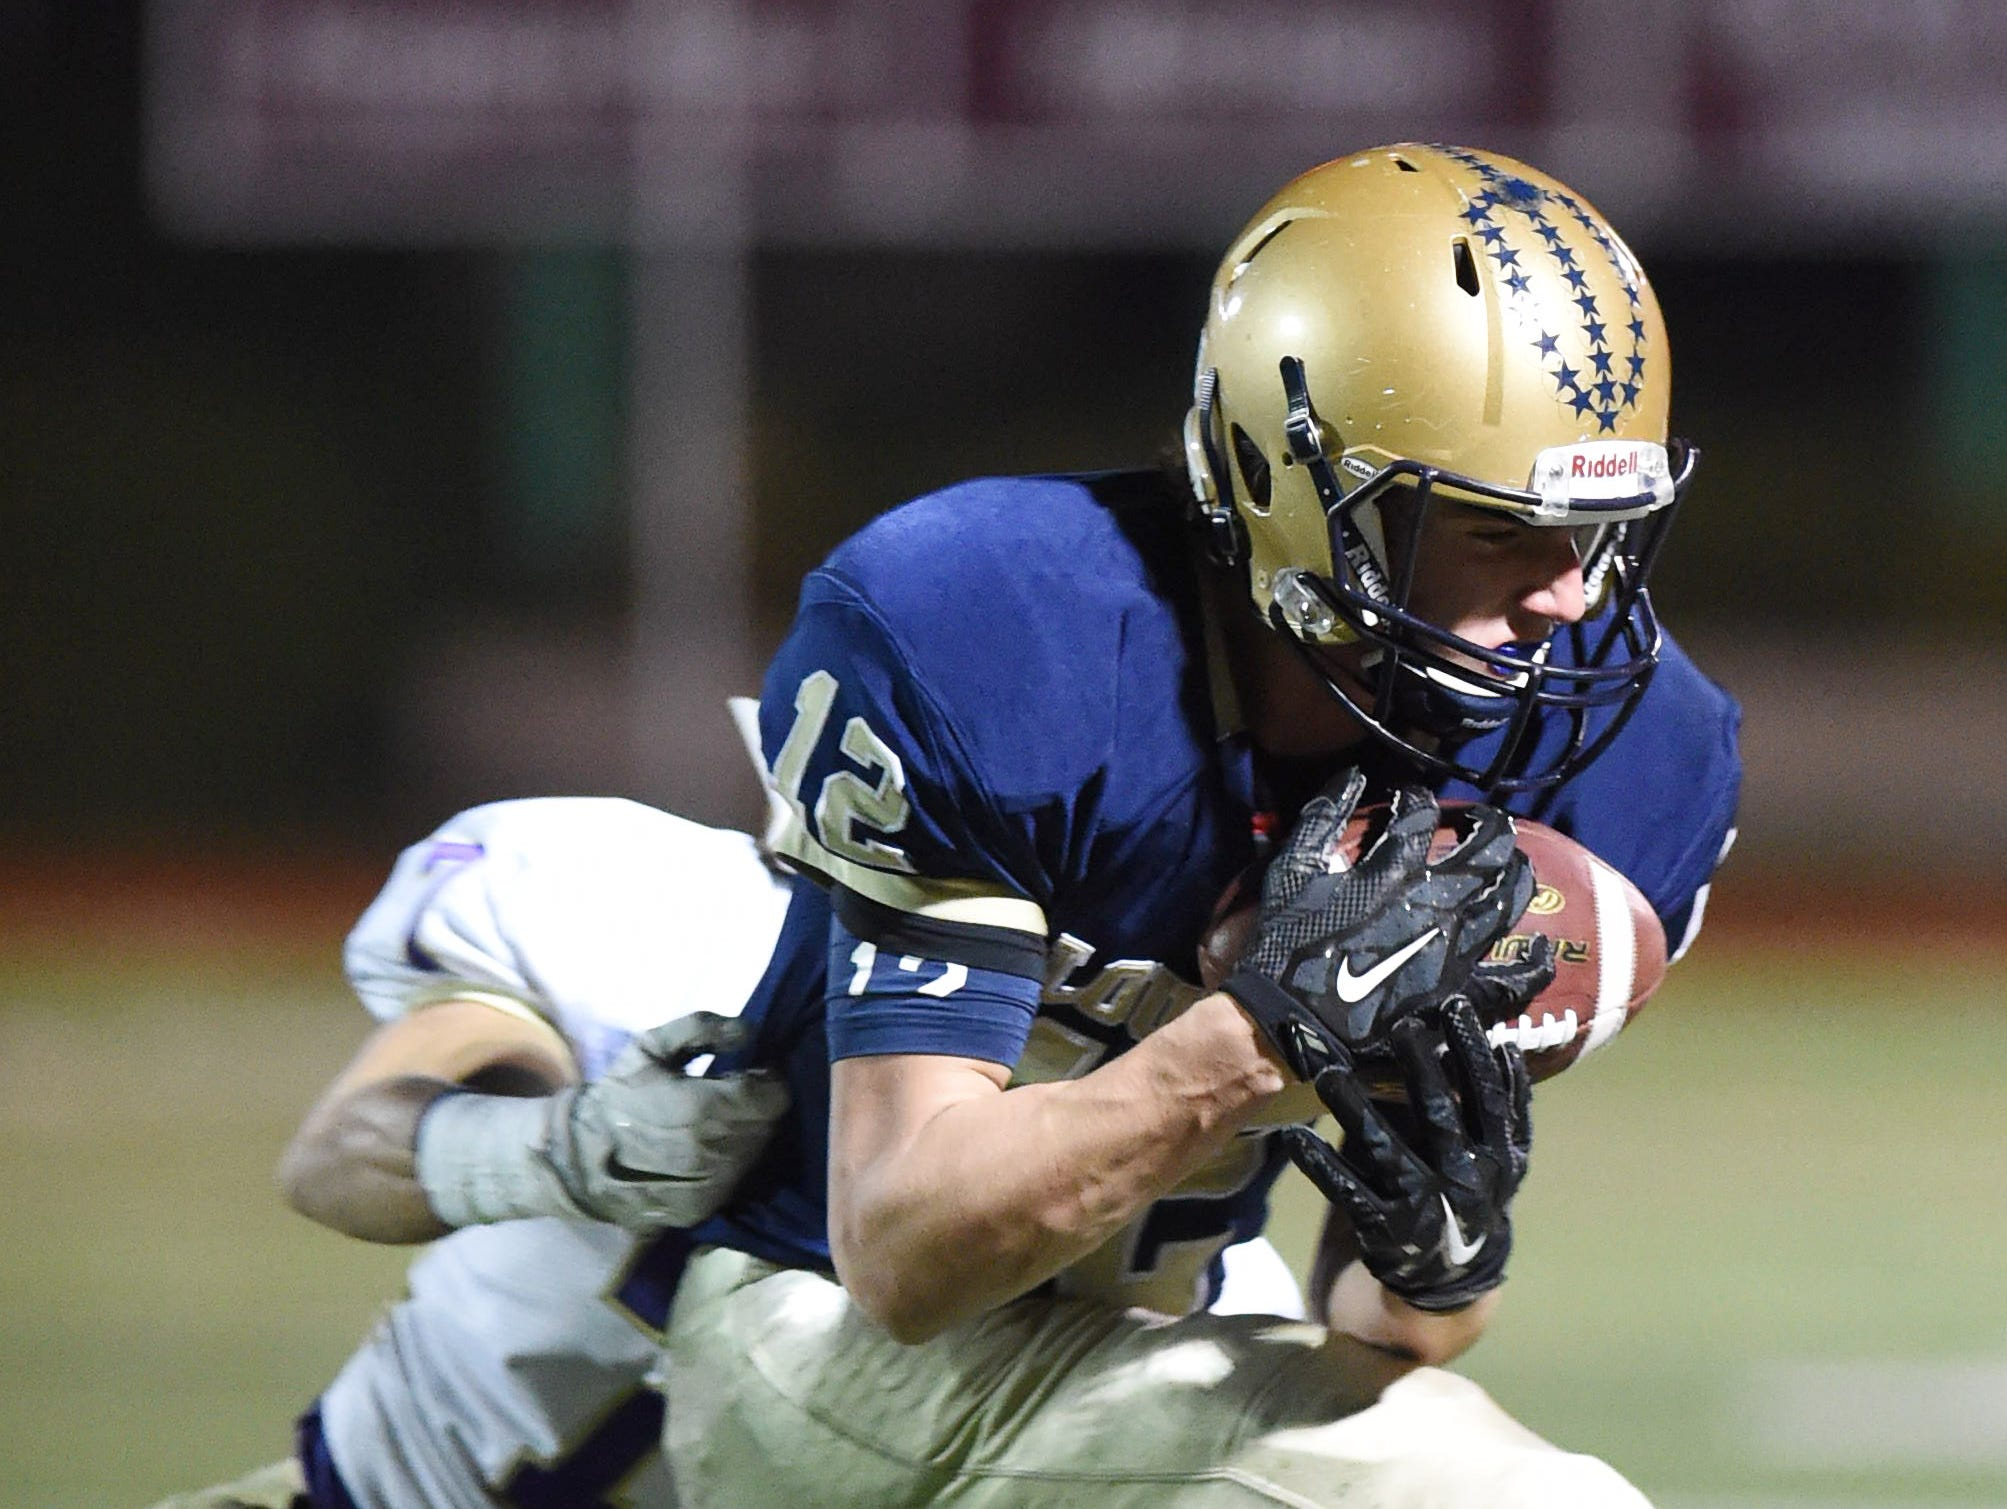 Lourdes' Luke Timm catches a pass ahead of Amsterdam's David Crawford during the Class A semi final at Dietz Stadium.